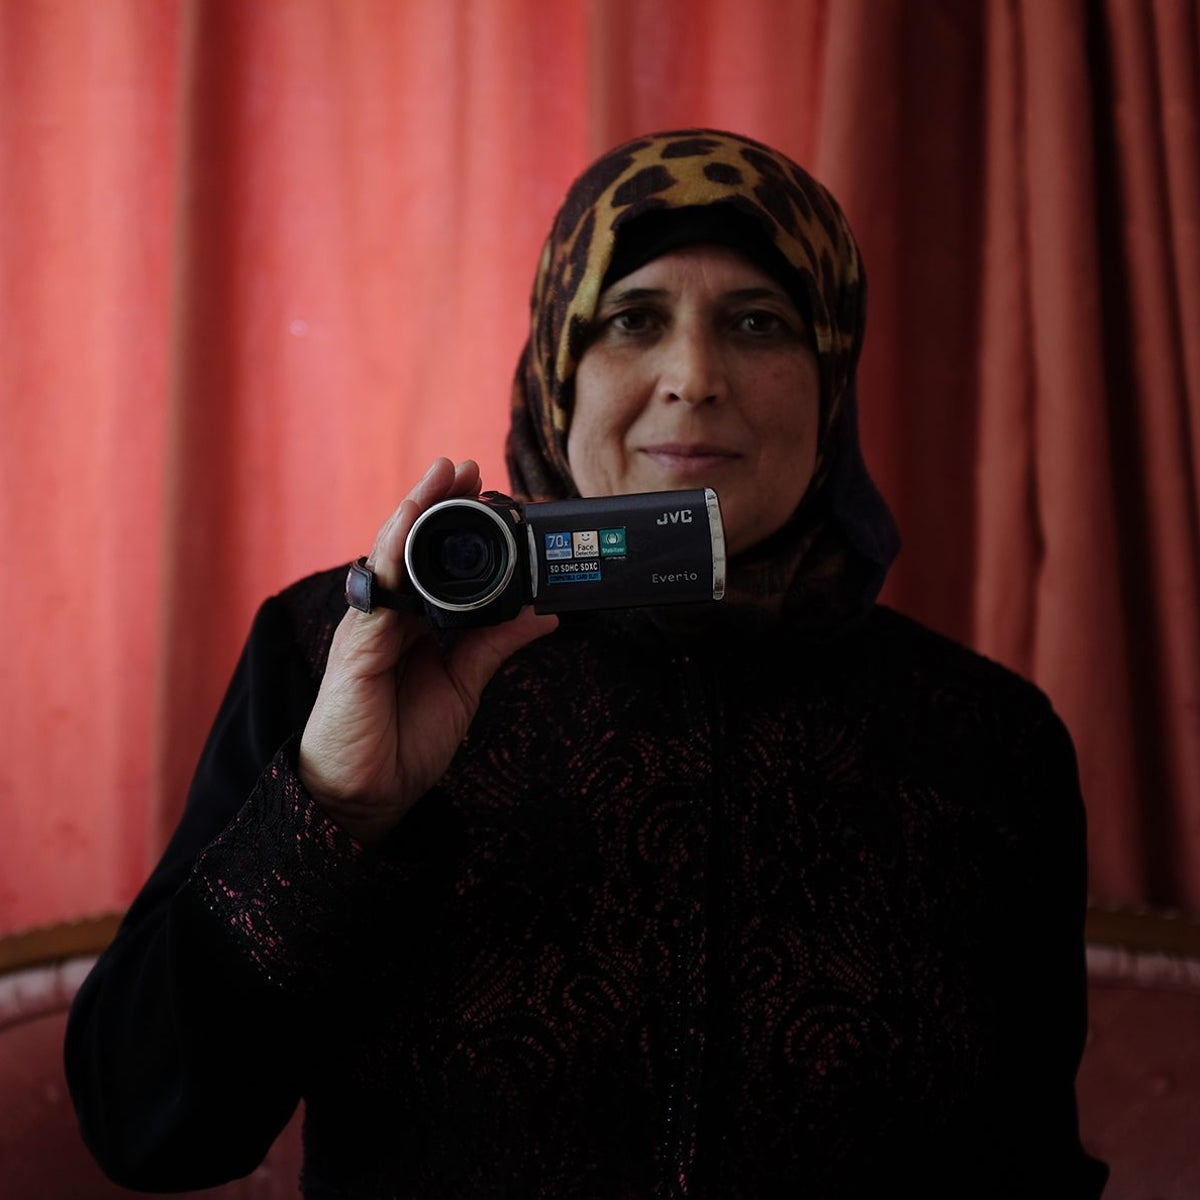 """Rima Abu Ayesha, who volunteers for the human rights organization B'Tselem. Her image is in """"50 Years"""" at the Jaffa Art Salon."""